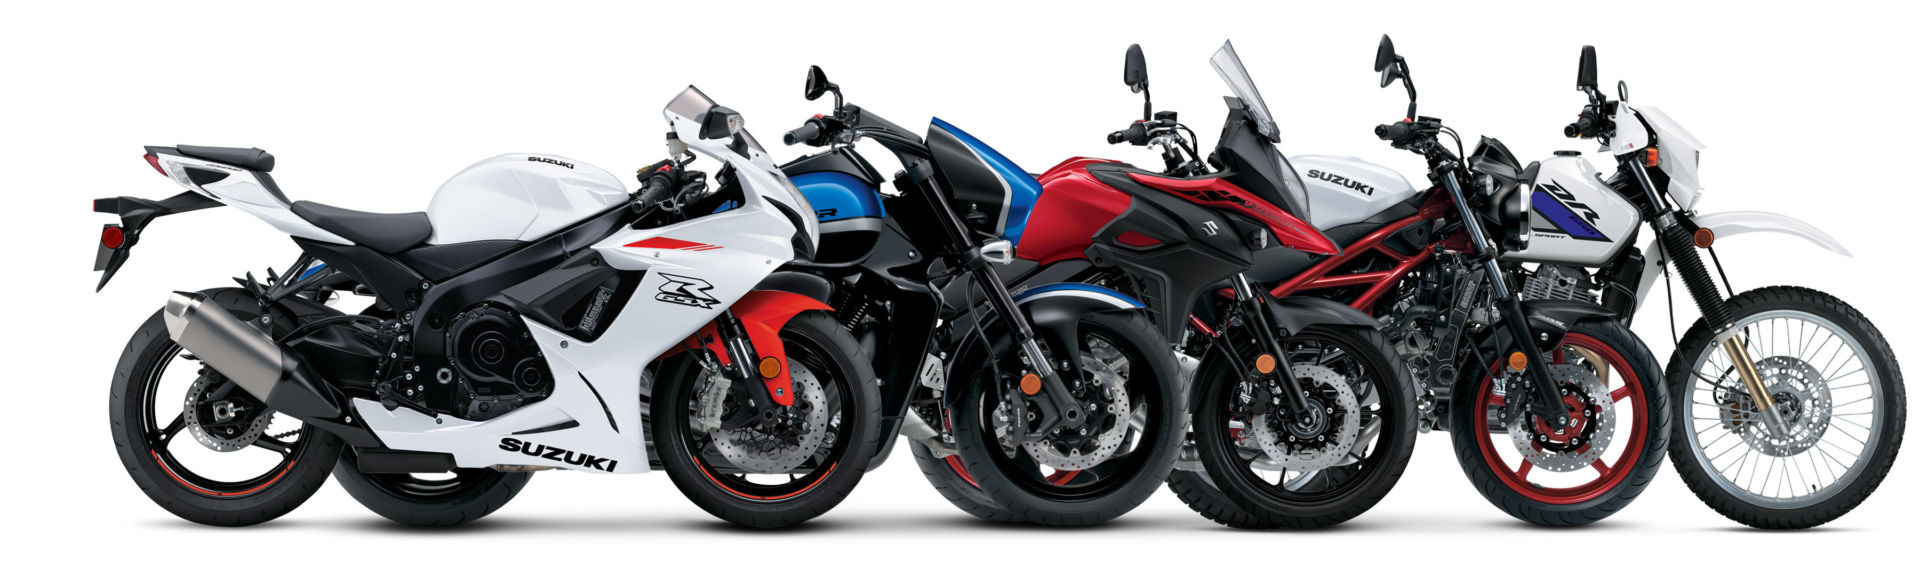 2021 Suzukis (from left): a GSX-R600, a Boulevard M109R B.O.S.S, a V-Strom 650, a SV650, and a DR650S. Photo courtesy Suzuki Motor of America, Inc.